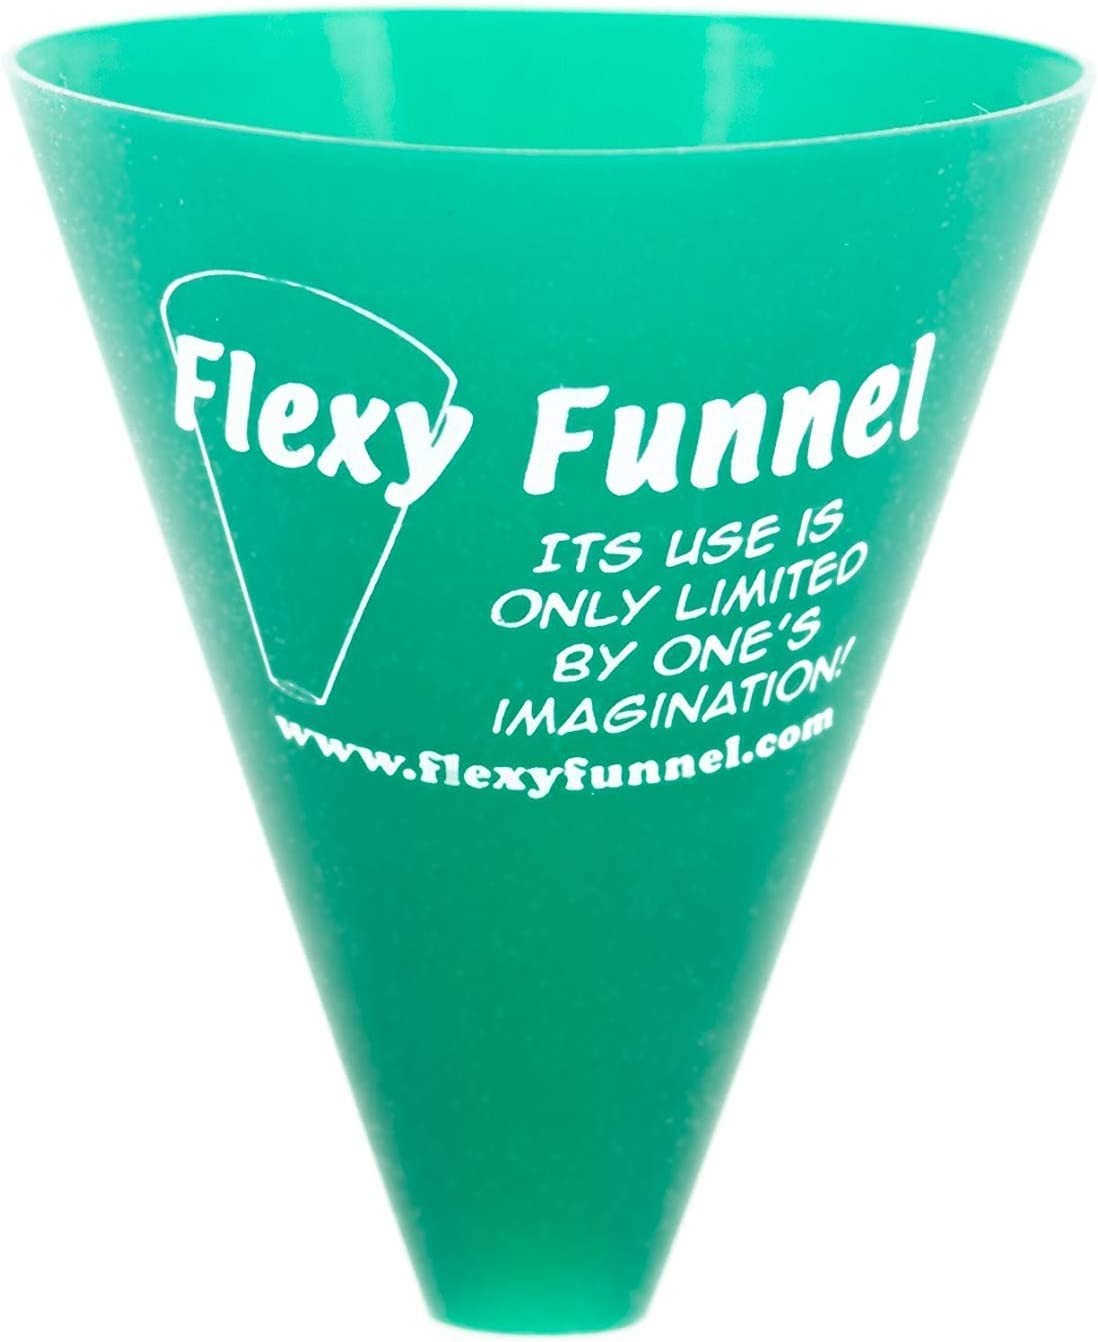 Flexy Funnel Original Silicone Funnel Tool for Transferring of Liquid, Fluid, Dry Ingredients & Powder Great for Kitchen, Automotive, Lab Use, Arts & Crafts, 2 Pack (Green)